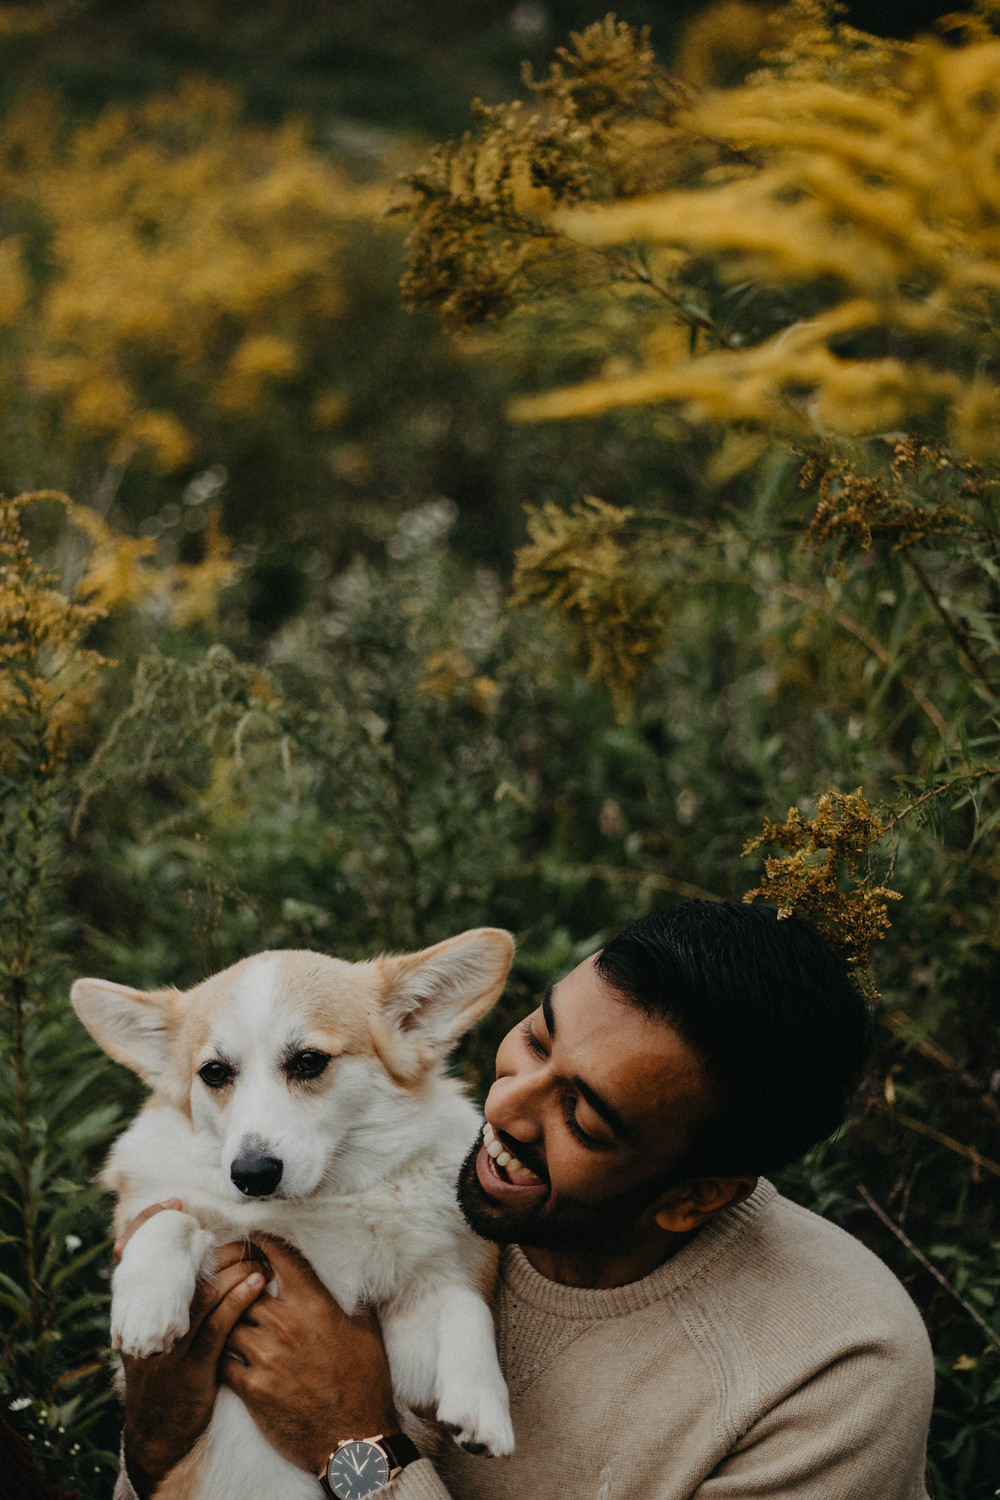 Dog friendly Couples Session in Pittsburgh, PA by Taylor Slusser Photography located in York, PA